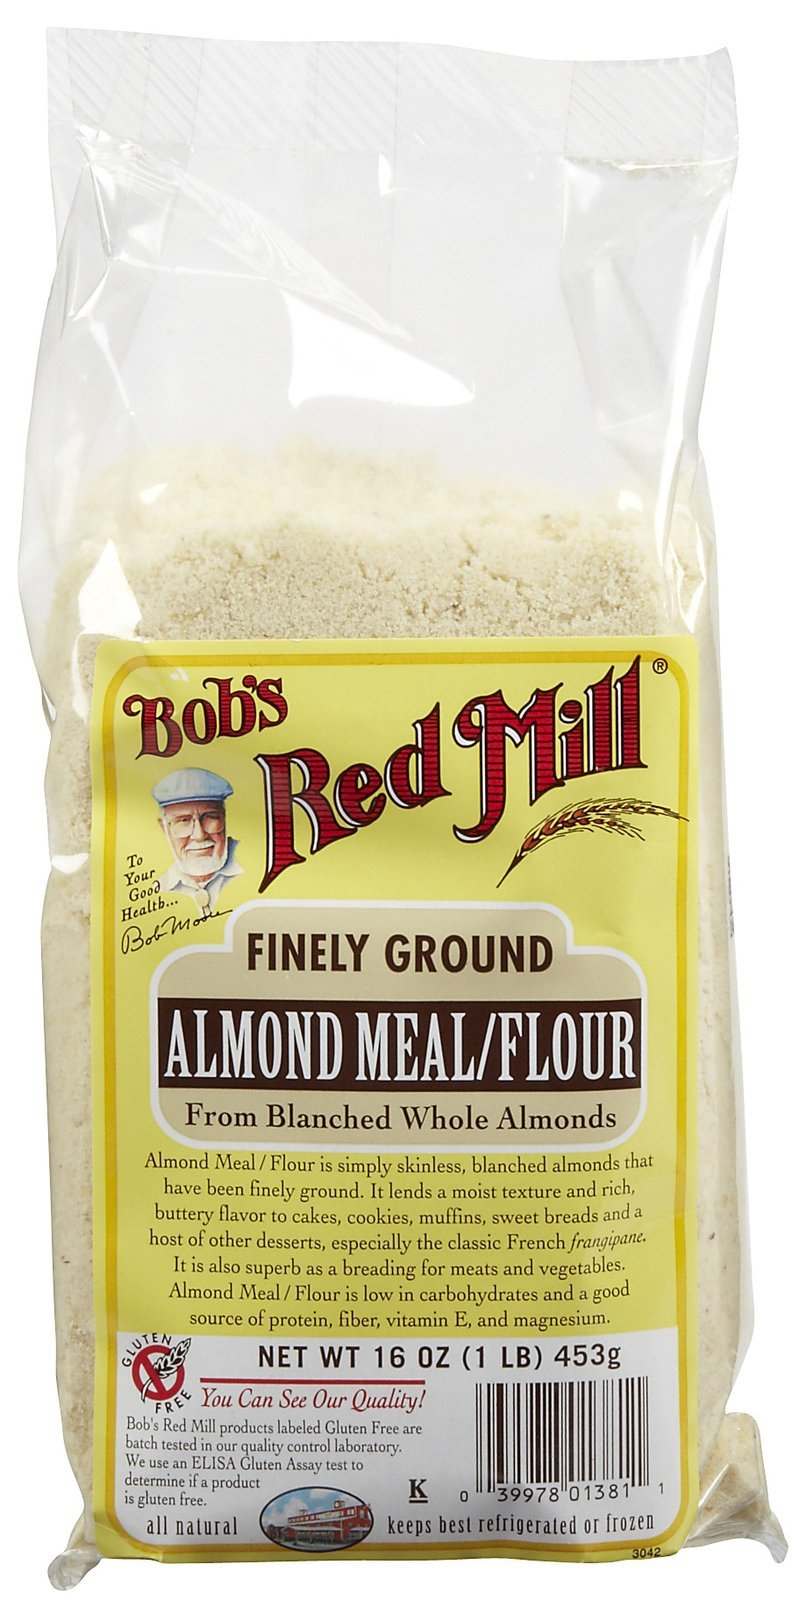 Bob's Red Mill Almond Meal/Flour, 16-Ounce Packages (Pack of 4) (Value Bulk Multi-pack)